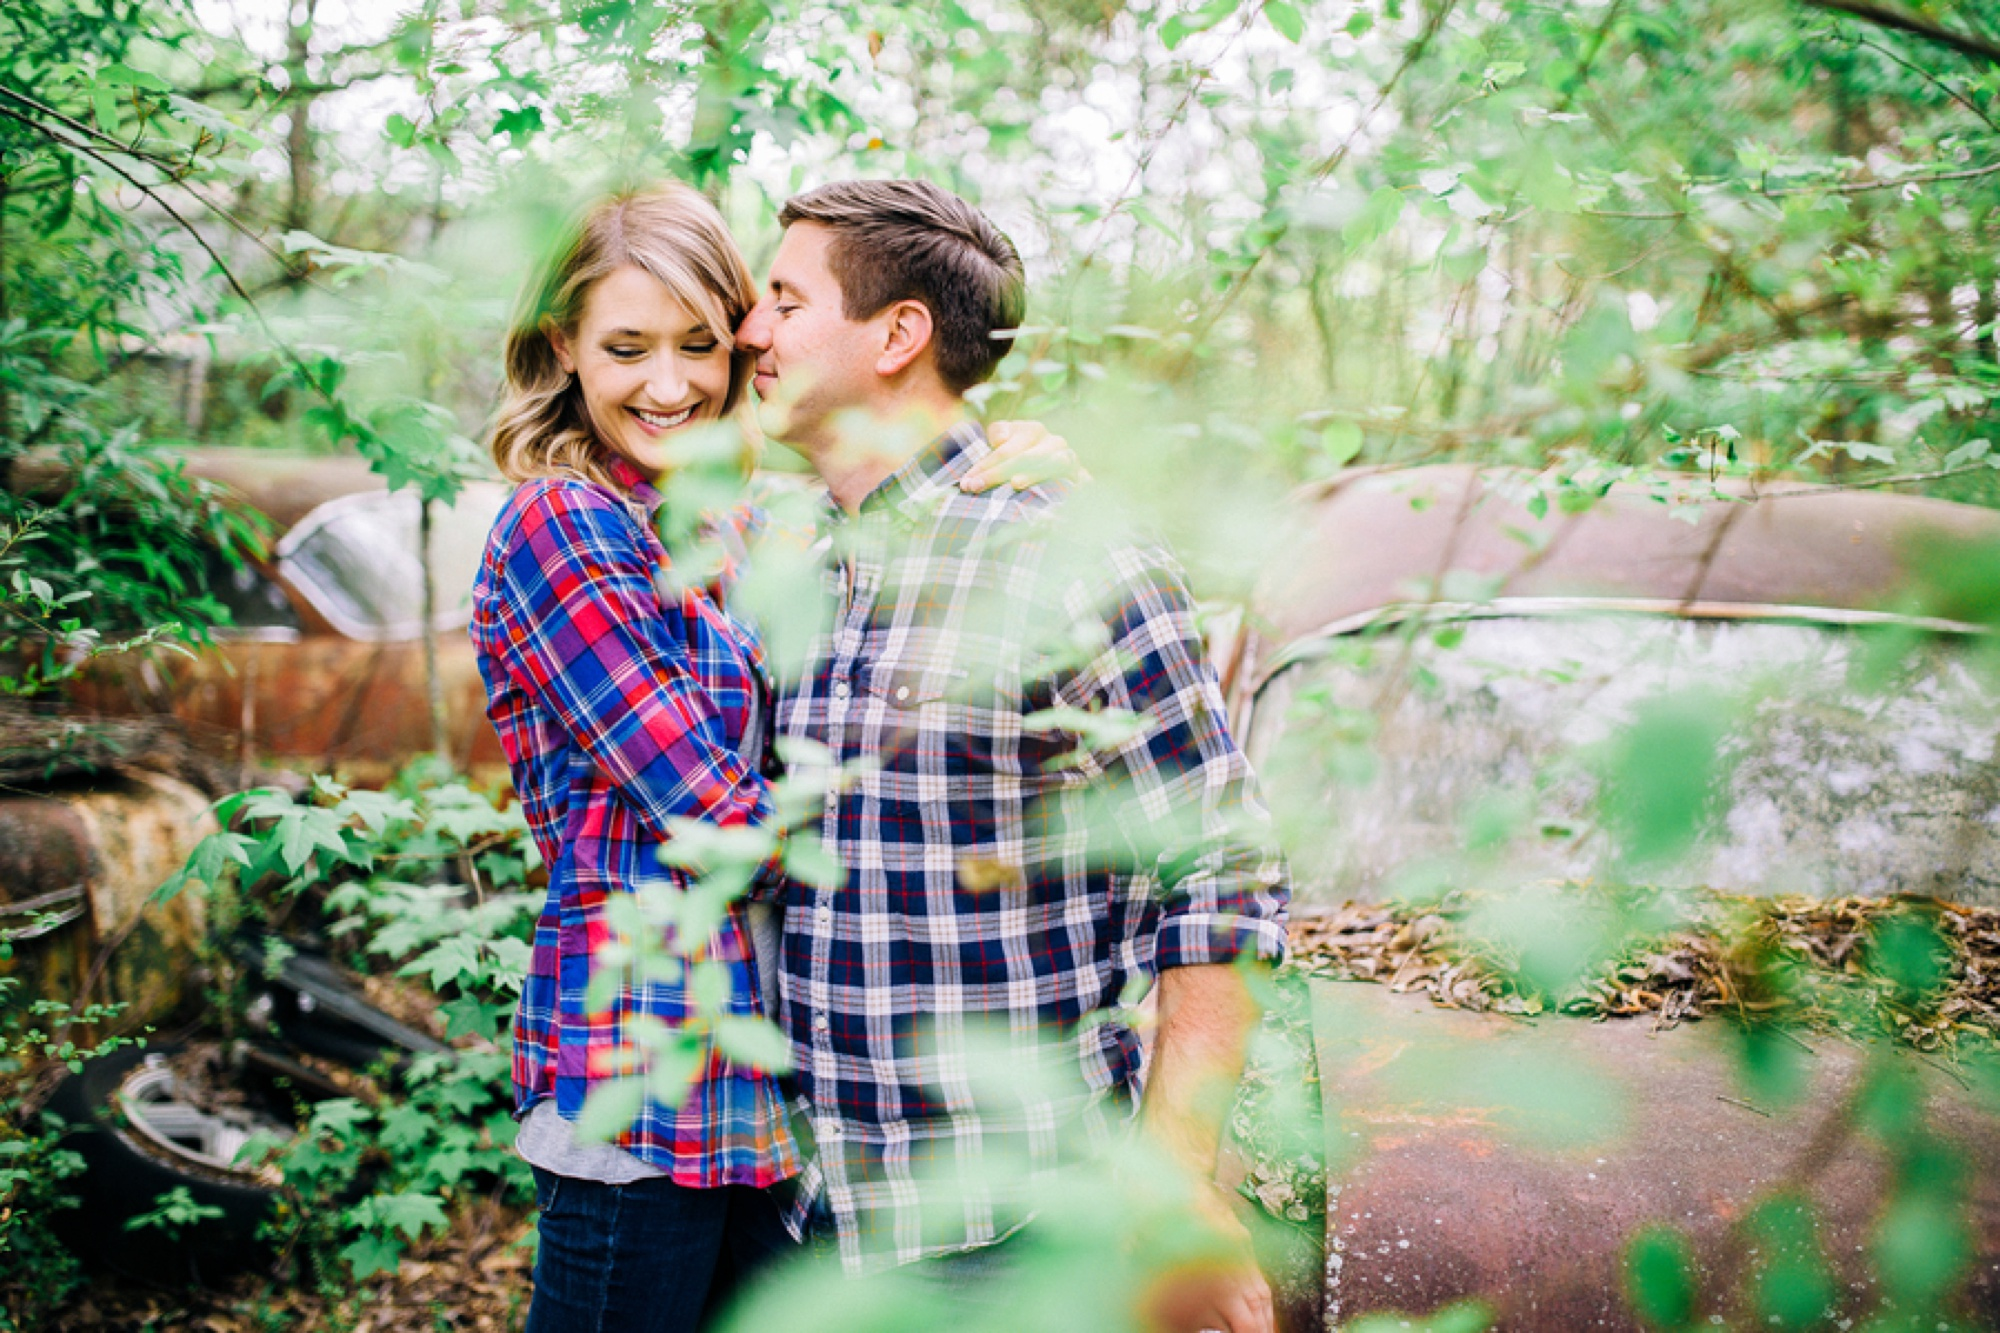 couple picture ideas, styled engagment picture ideas, Vintage Junkyard Couple Session